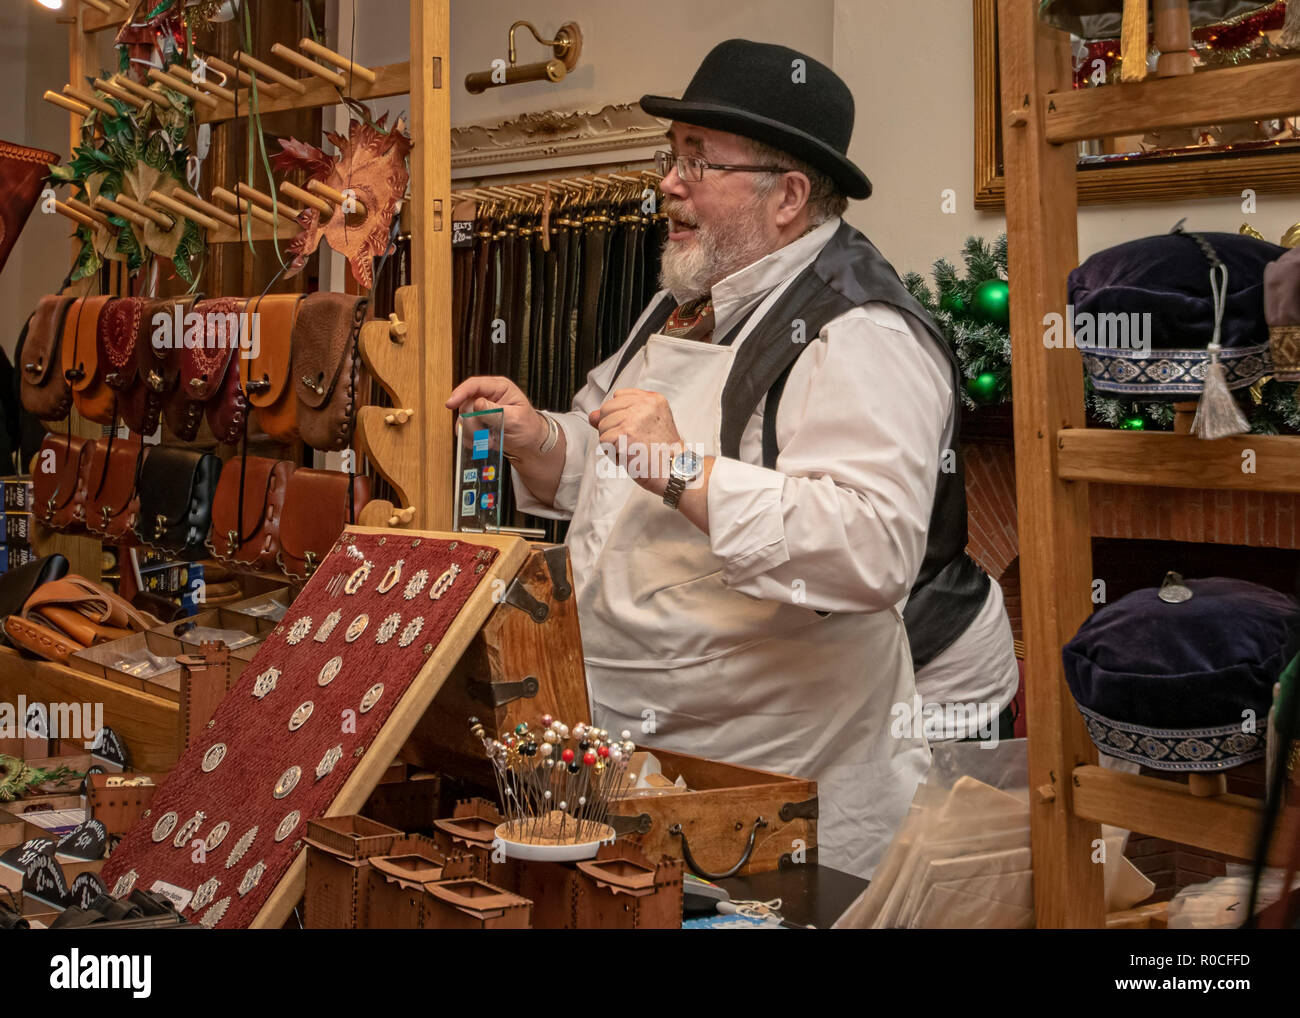 UK, Market Bosworth, Victorian Christmas Fair - December 2015: marker trading selling leather goods dressed in as a victorian shopkeeper - Stock Image